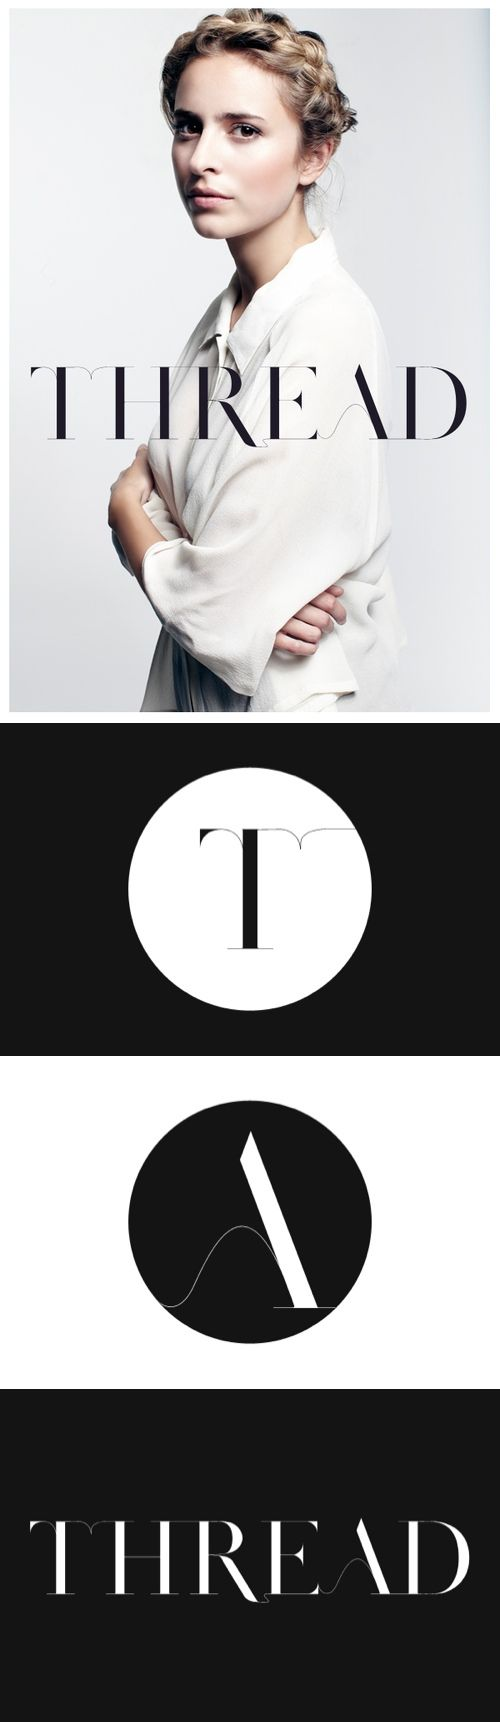 Thread Conceptual Identity Route by Tim Jarvis. Fashion logo